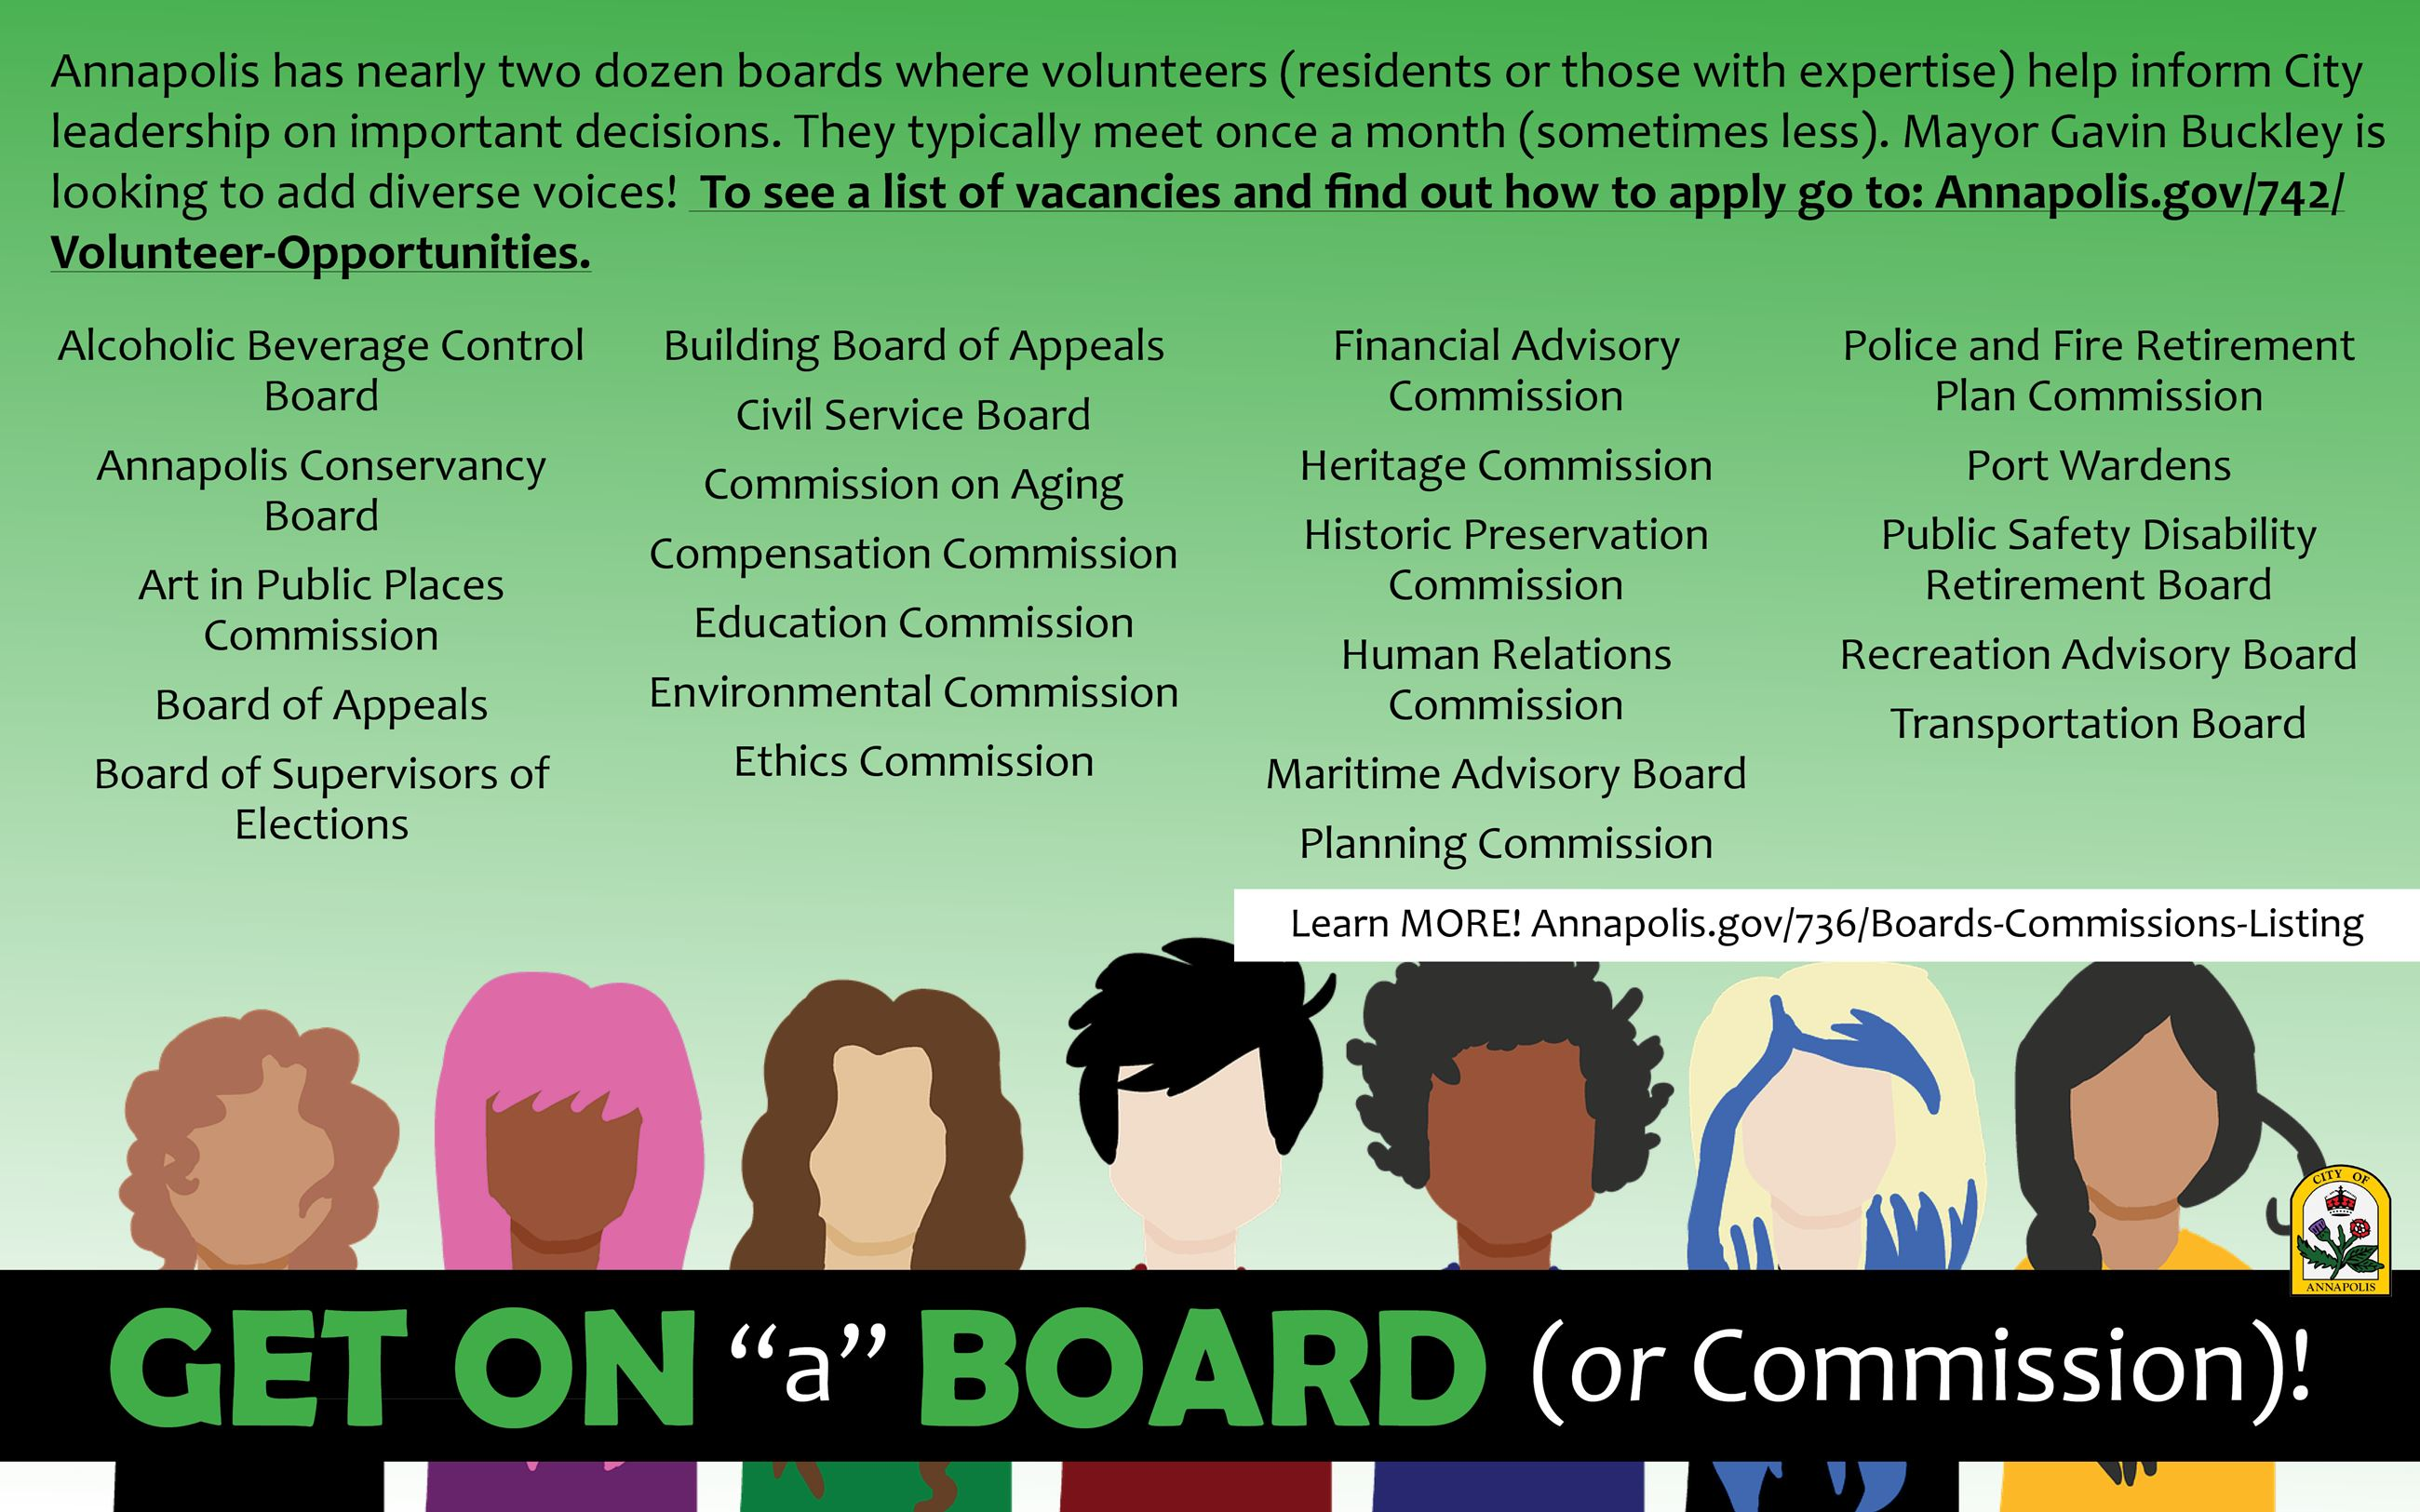 Board or Commissions Vacancies Advertisement